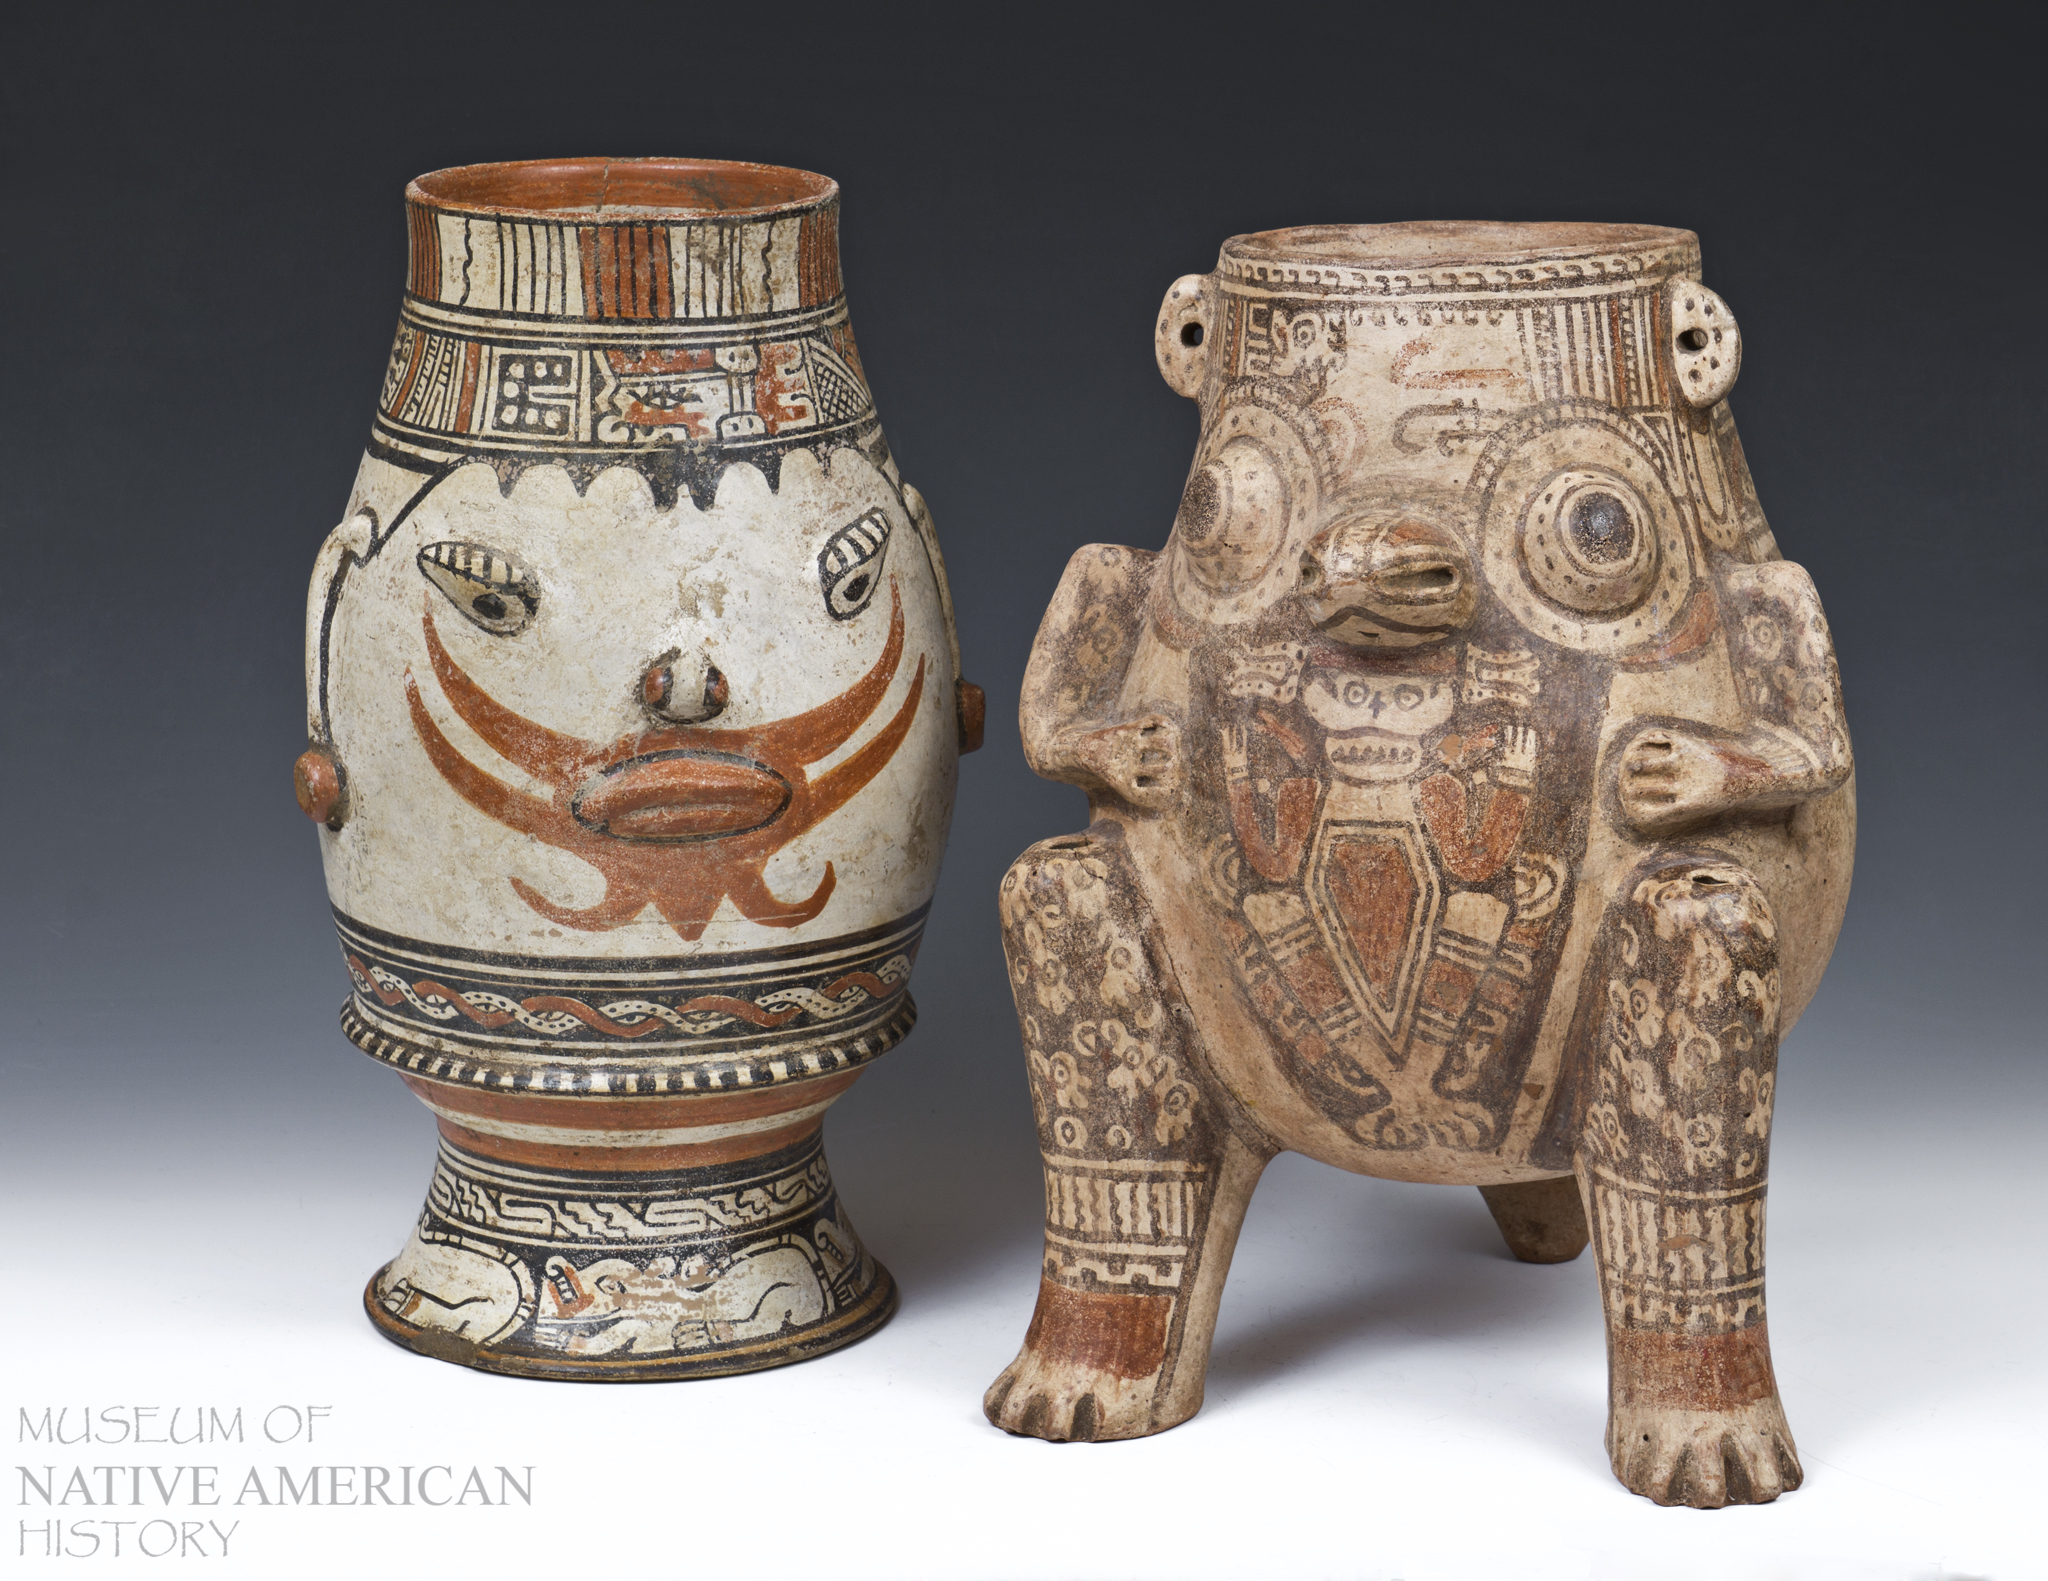 "(Left) Pataky polycrome ""footed"" urn from the Nicoya/Guanacaste area of Costa Rica. This vessel features jaguar images at base and human facial features around the body. The red around the mouth represents facial hair. Circa 1000-1500 AD  (Right) Pataky style vessel from Nicoya, Costa Rica. Tri-leg Effigy Vase (Urn Style) with extensive artwork and design. Composite effigy including human arms and an avian face. Legs are adorned with Harpy Eagle heads. The artwork on the front of this vessel depicts a human skull and bones. Circa 1000-1500 A.D."